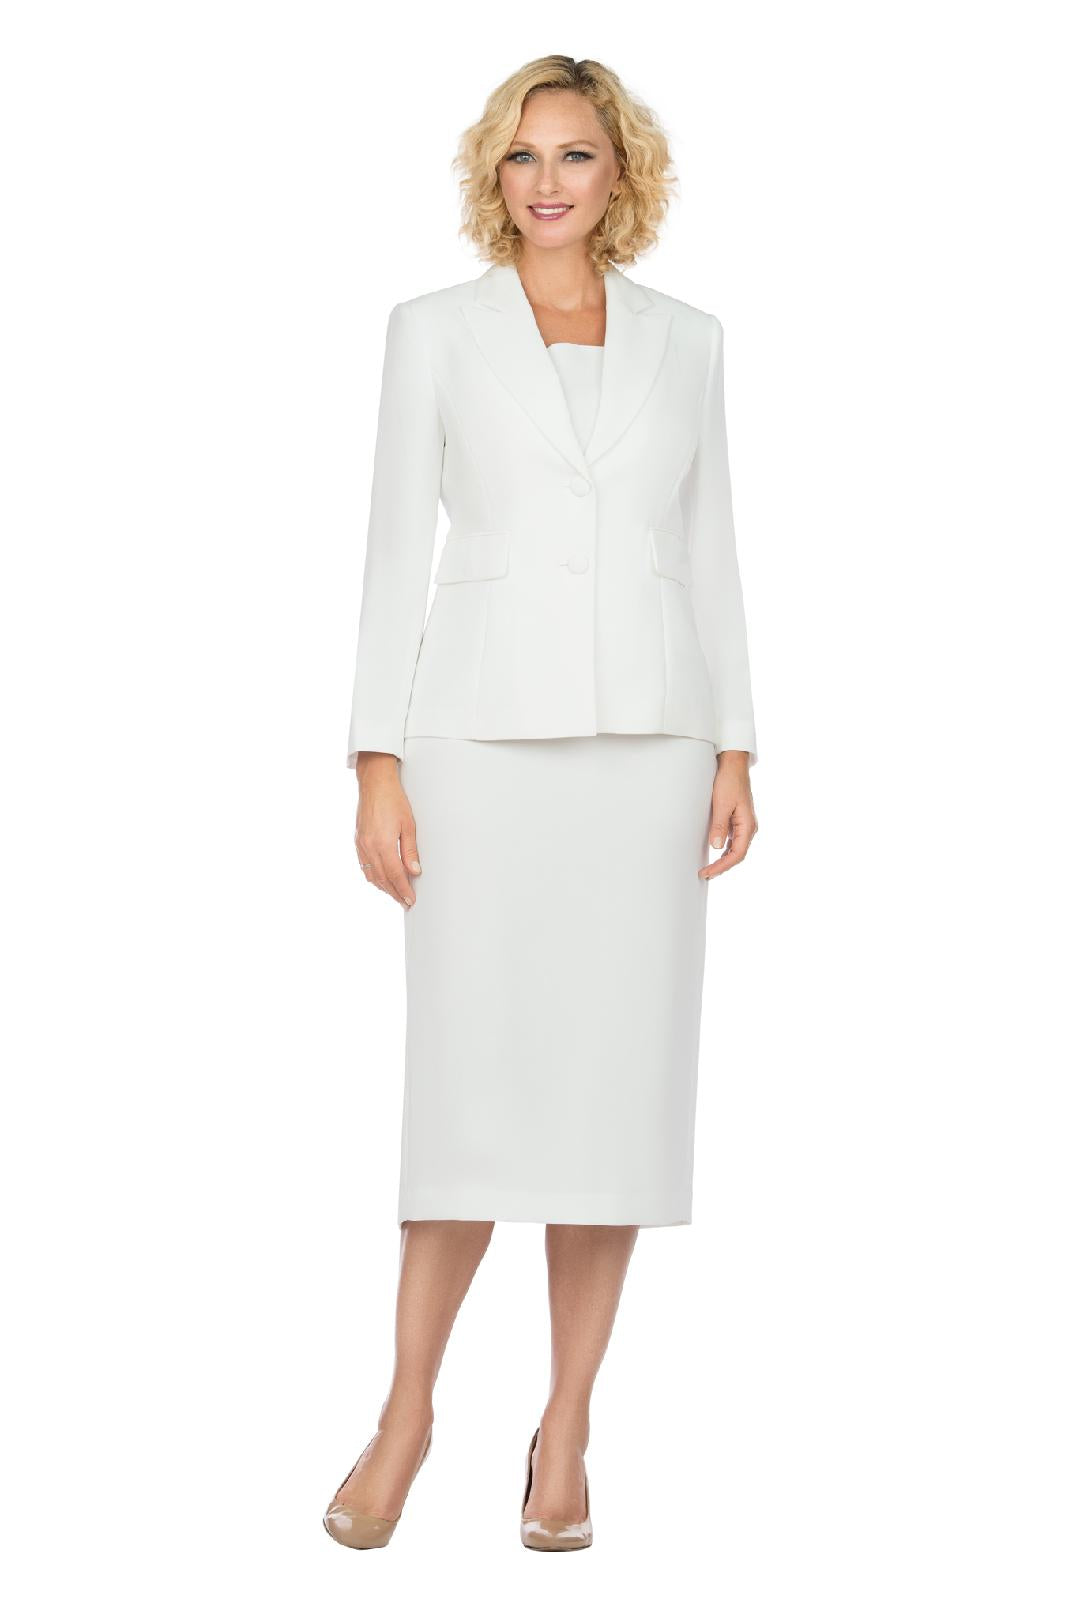 Giovanna Usher Suit S0710-White - Church Suits For Less